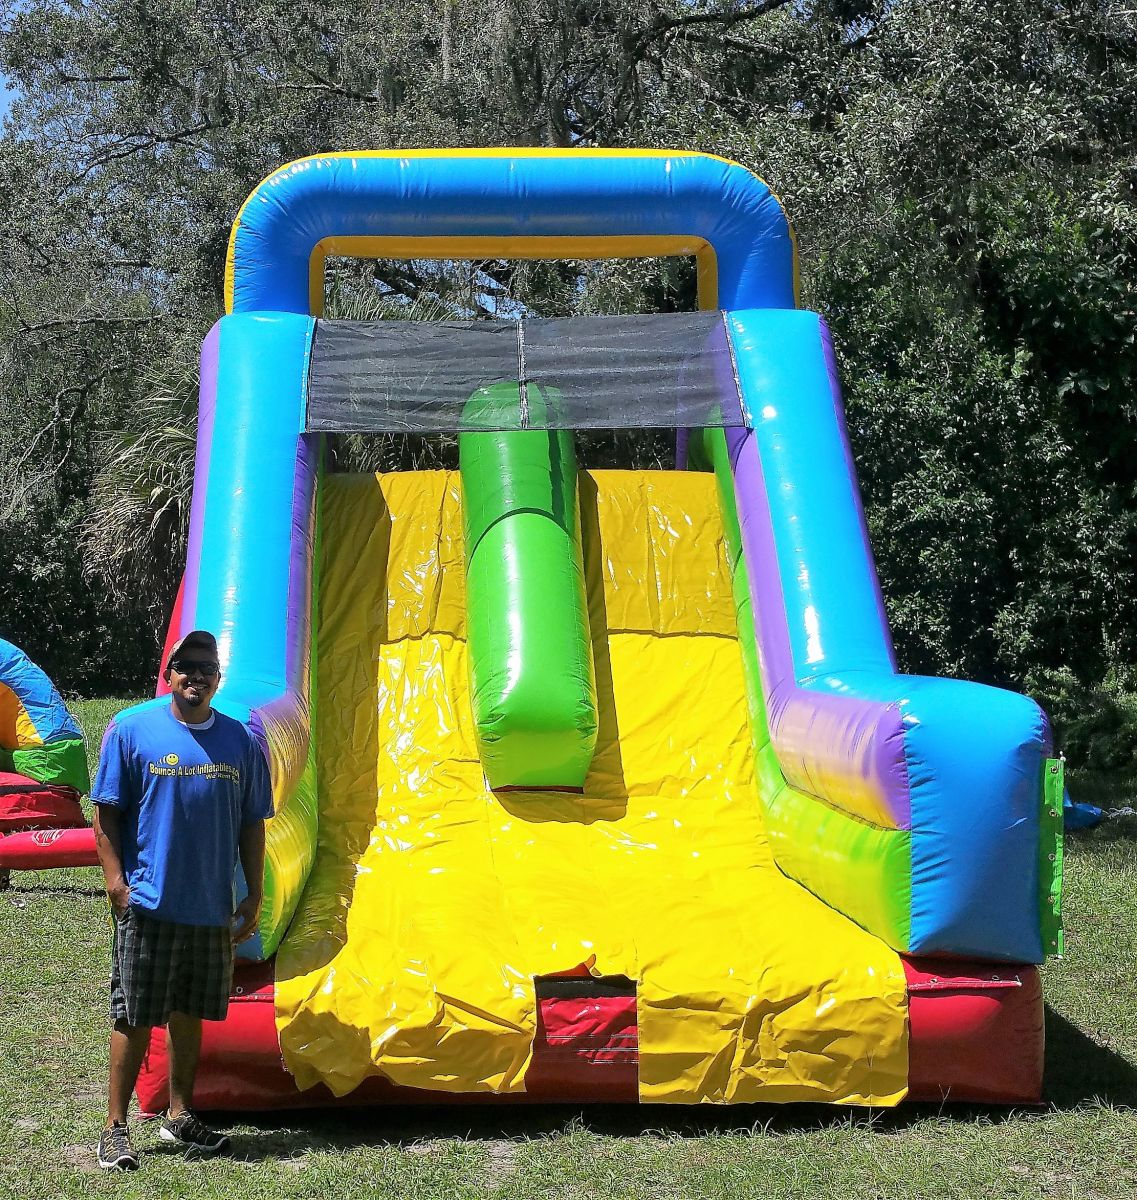 53ft Retro Dry Two Lane Obstacle Course Slide Bounce House